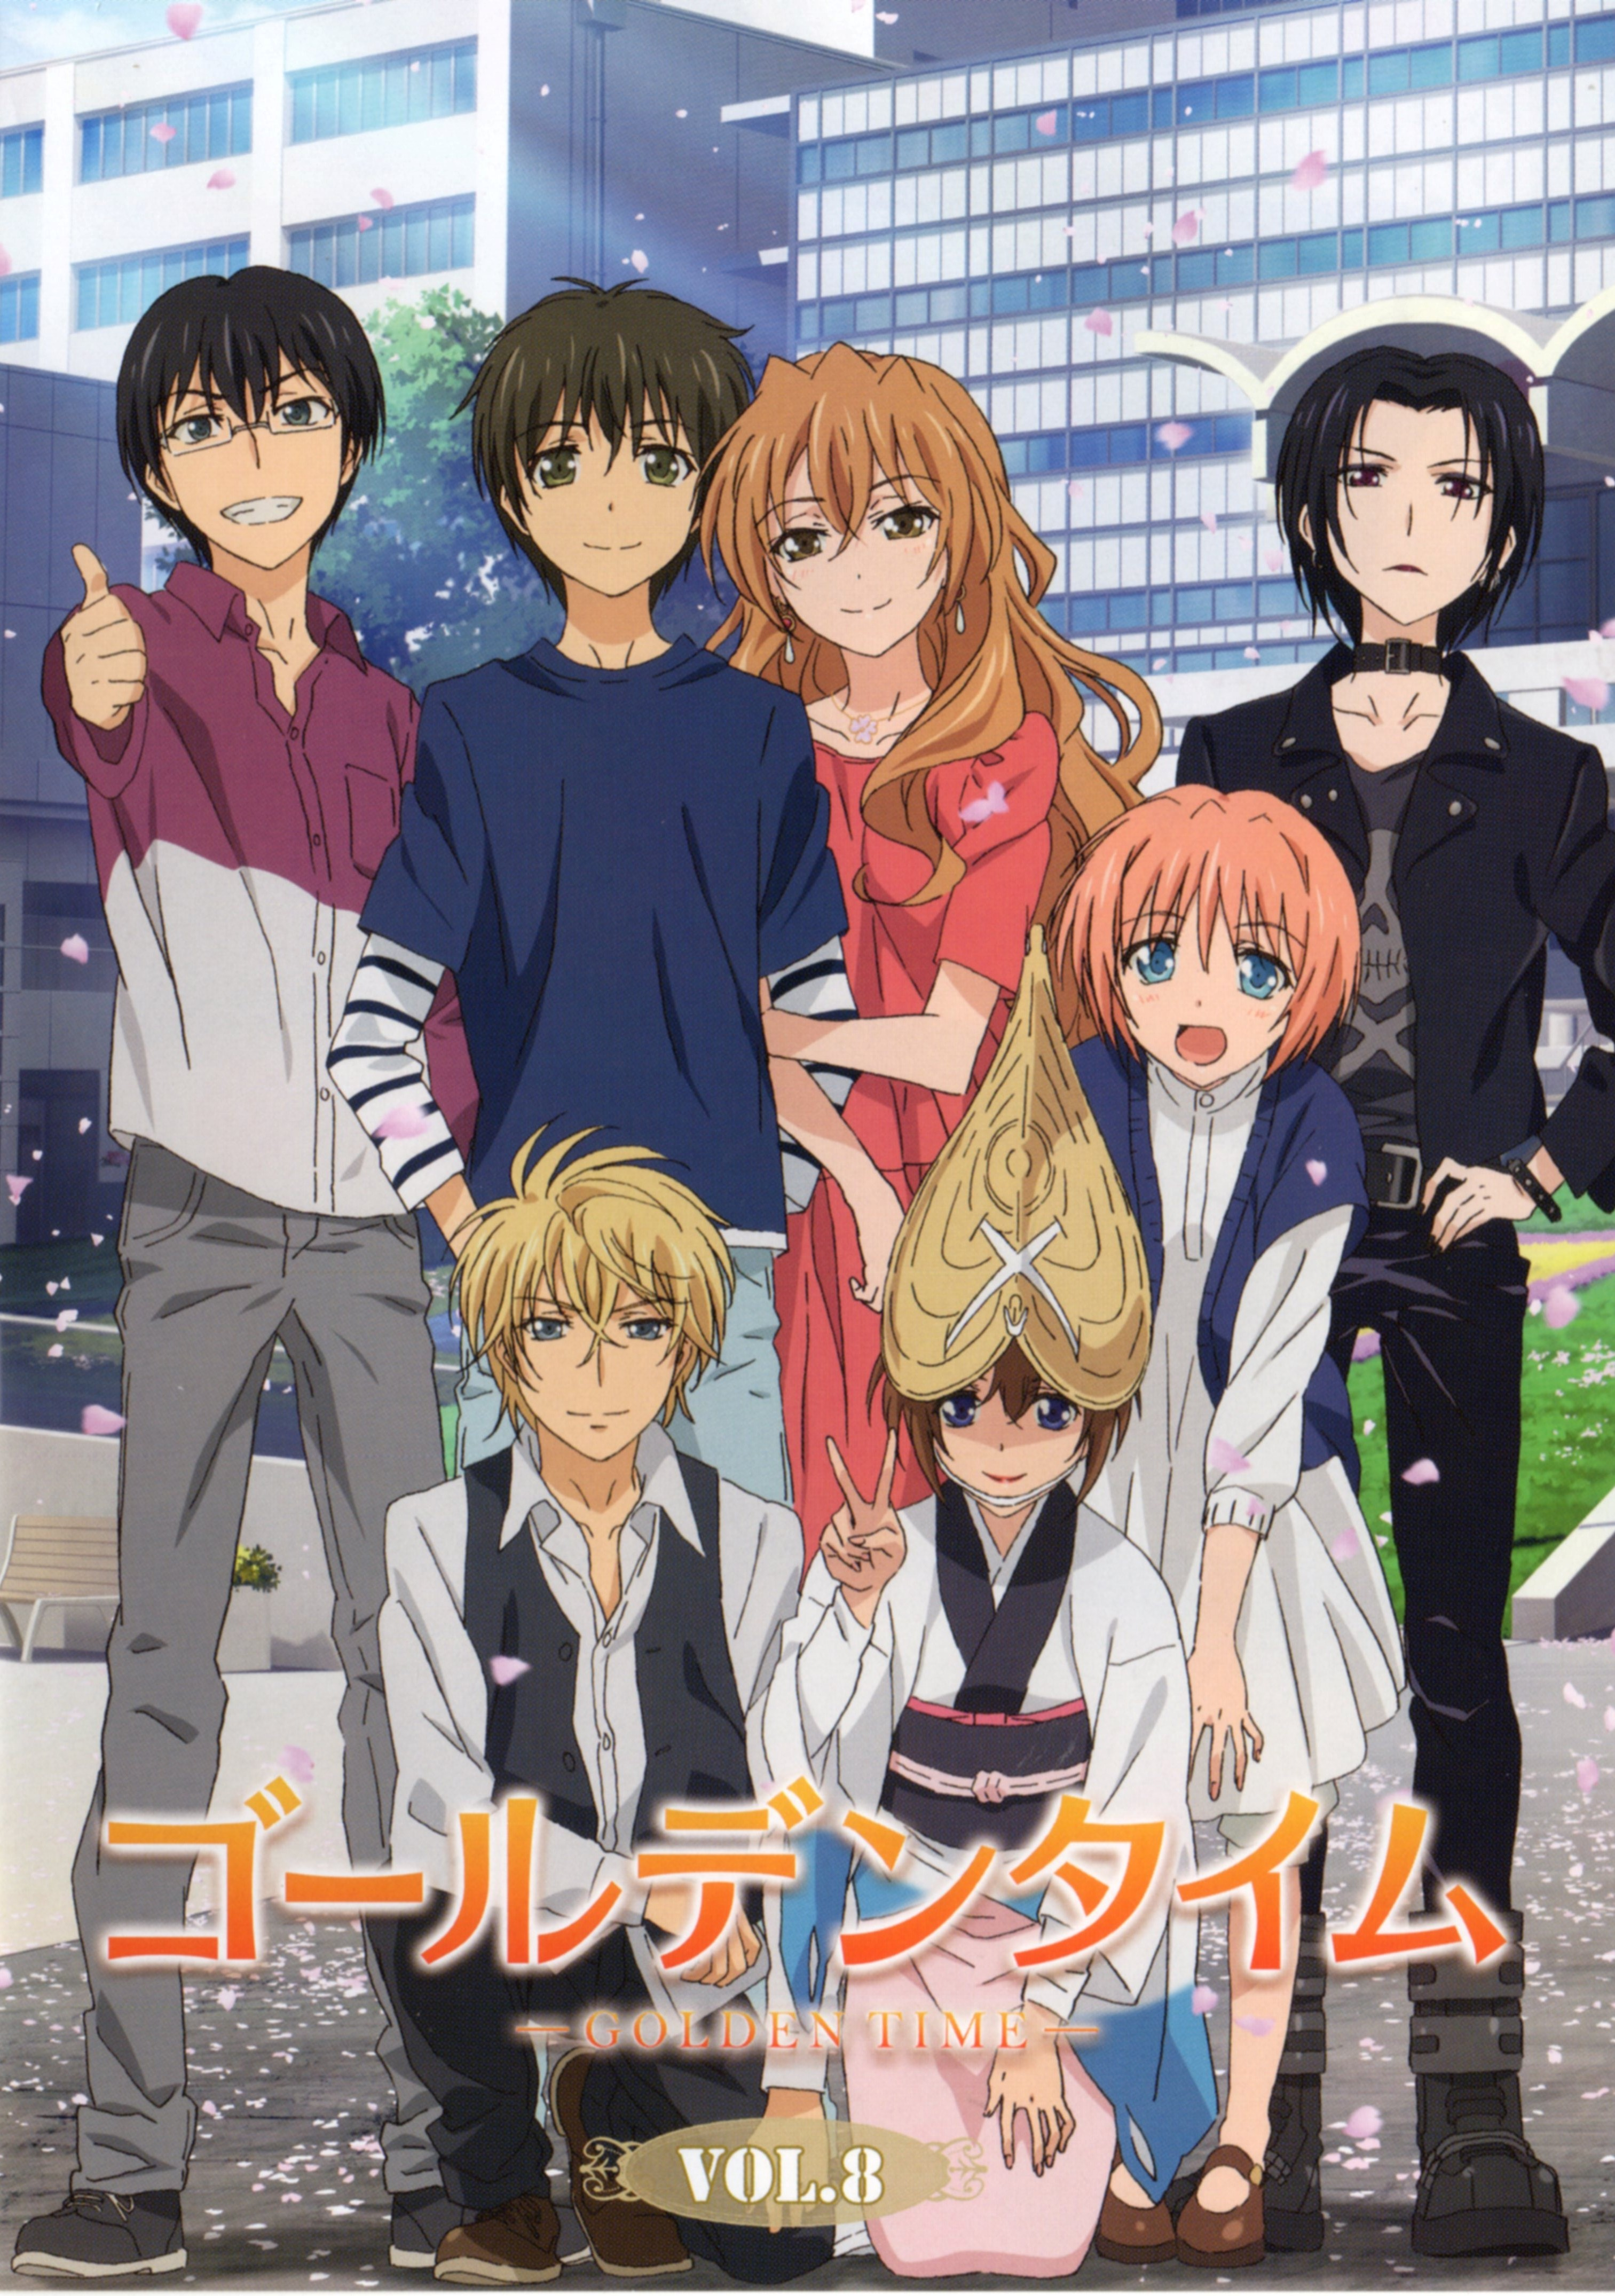 HQ Golden Time Wallpapers | File 1869.95Kb